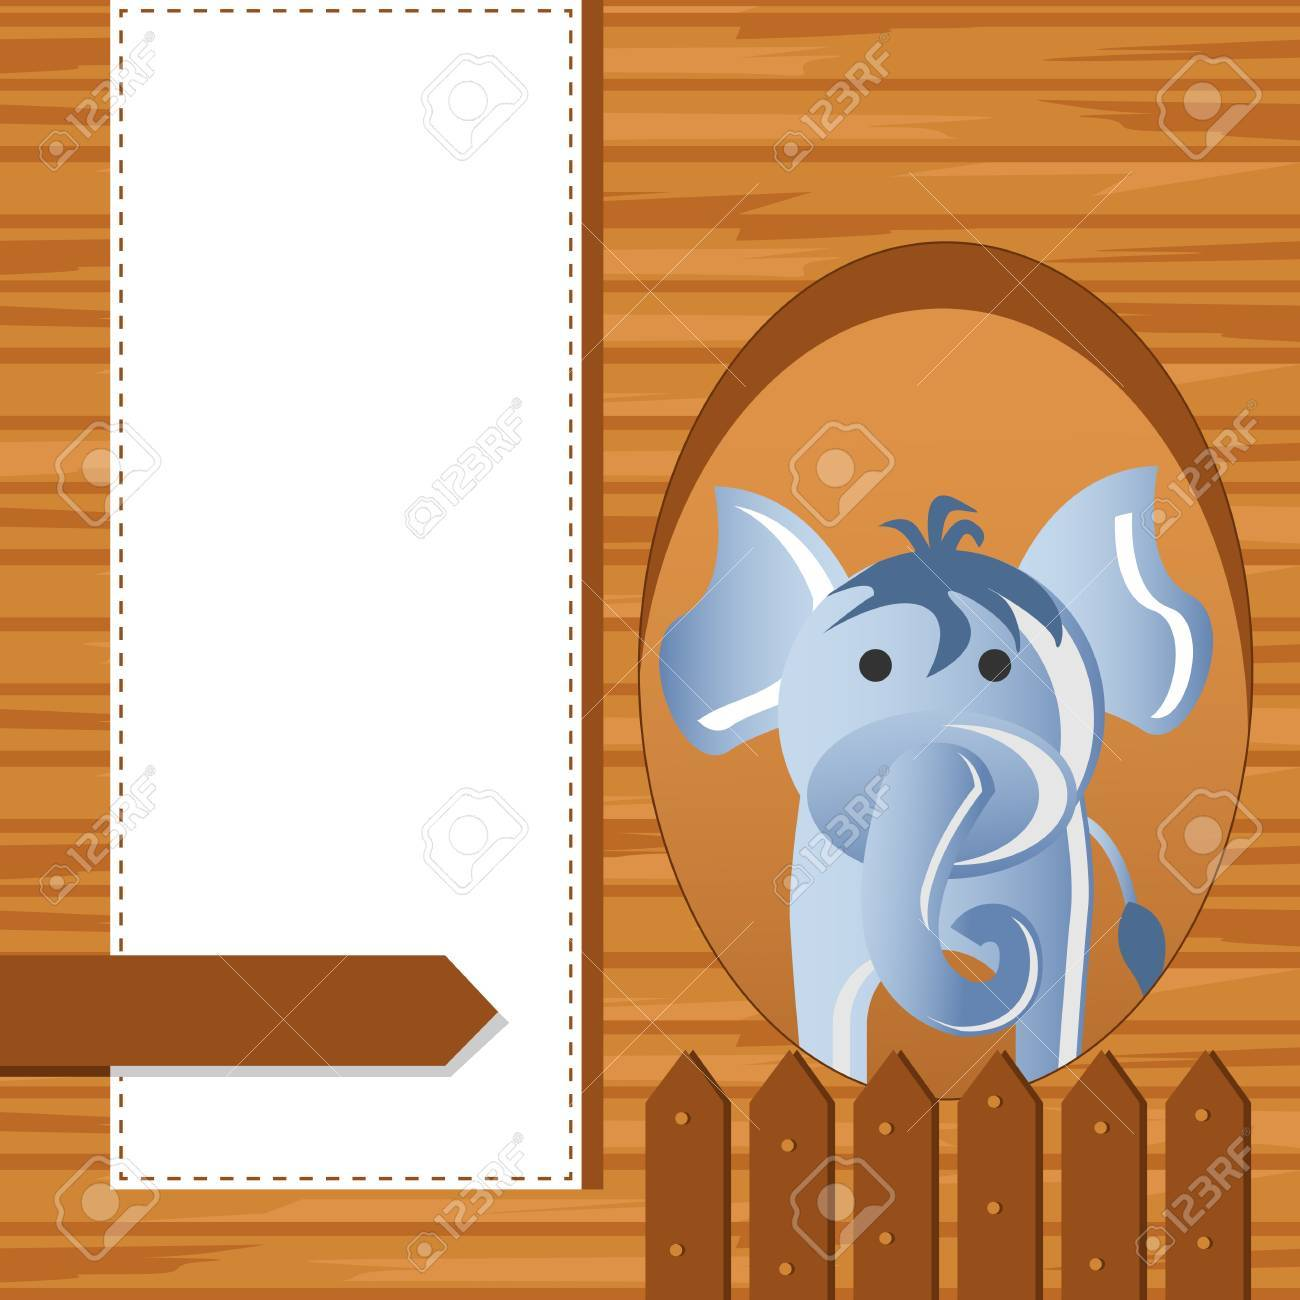 Elephant on Childish Background Stock Photo - 19259539